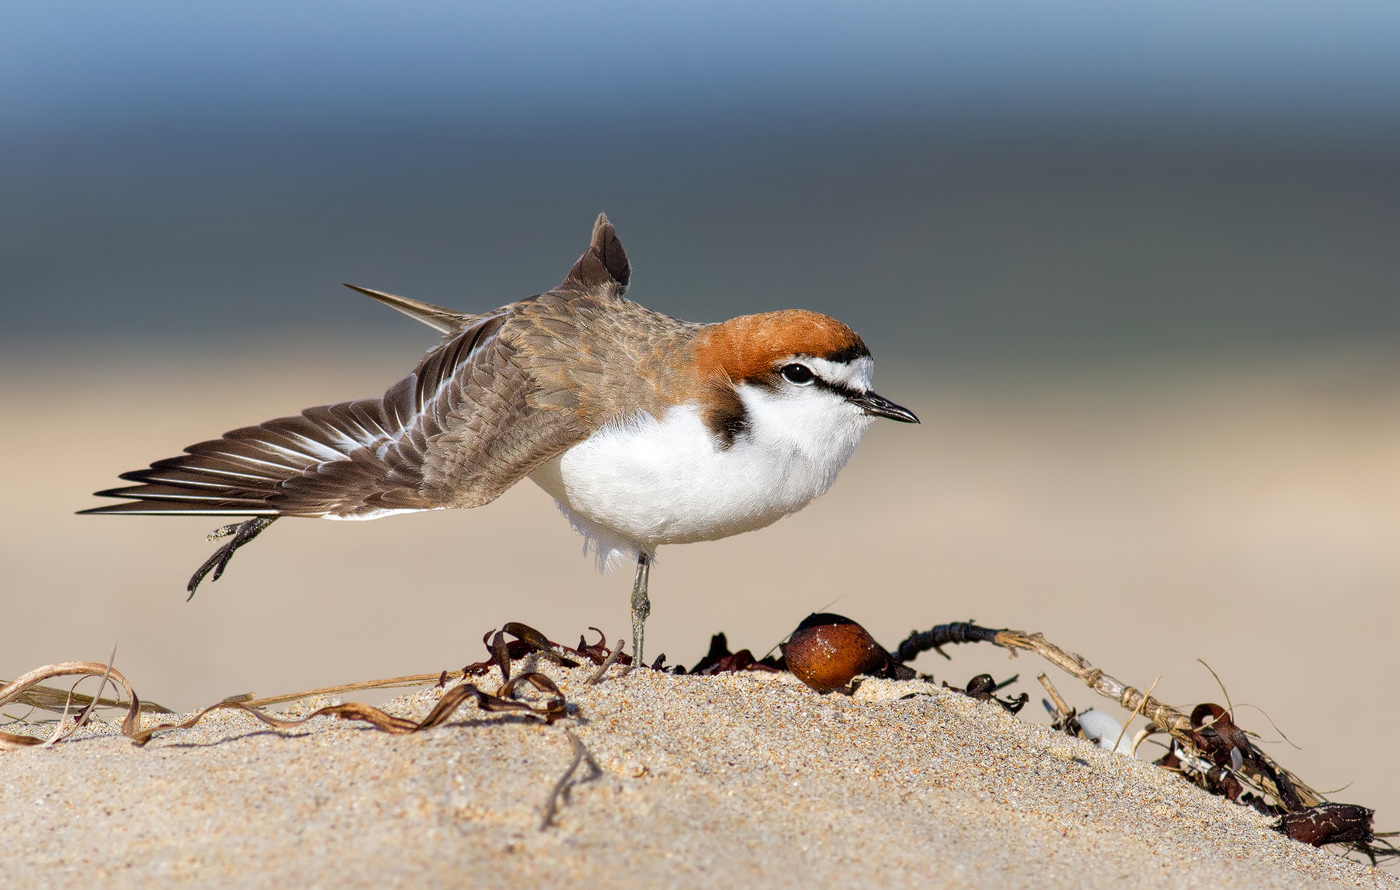 action_duadepaton-action-red-capped-plover-lake-conjolansw_0